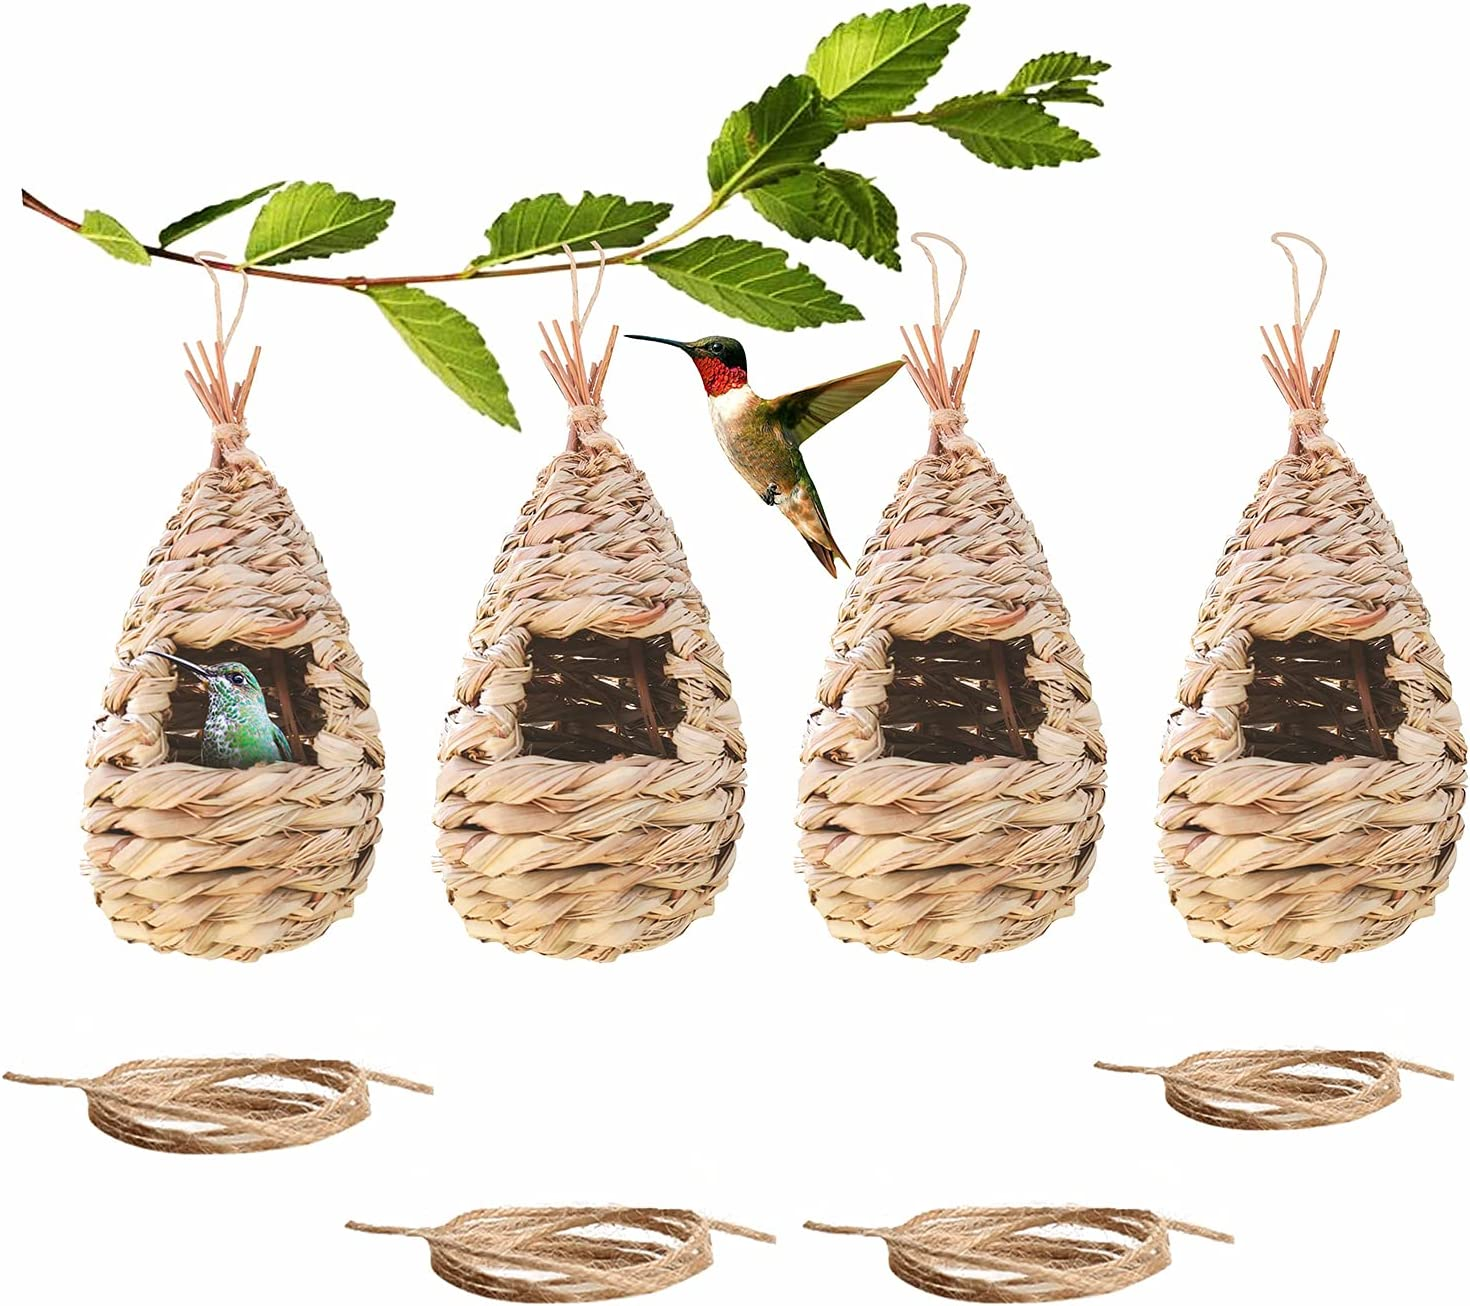 4 Pack Humming Bird Houses for Outside Hanging, Natural Grass Hummingbird House with Rope for Outdoors, Hand Woven Birdhouse for Nesting, Chickadee Wren Finch Canary Bird Hut Home Gardening Decor Gift